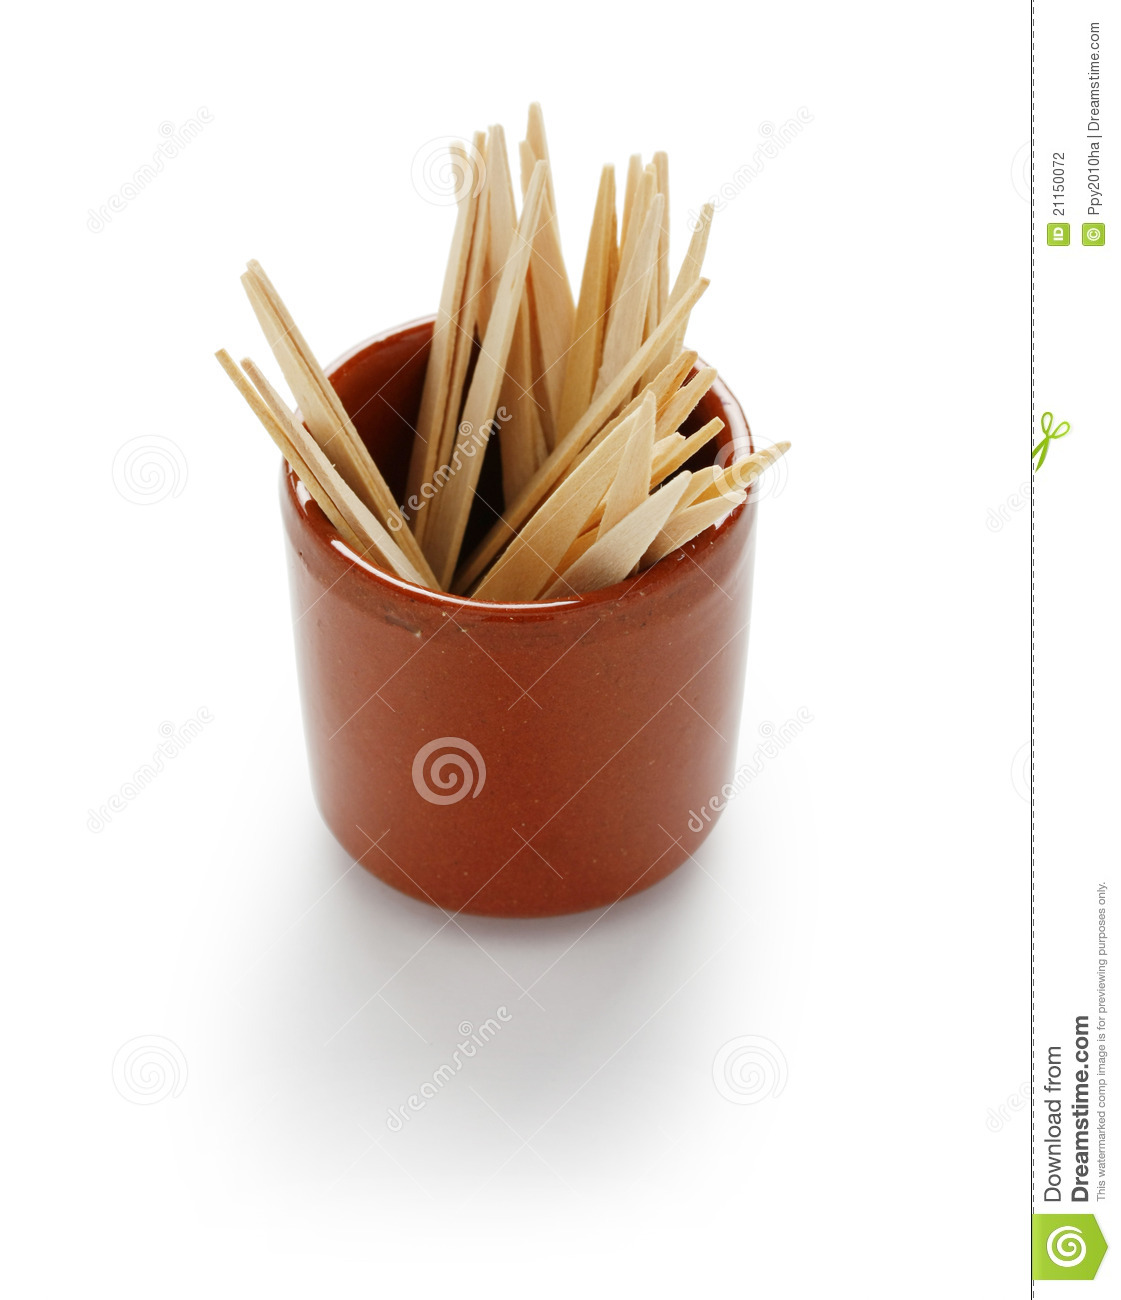 how to say toothpick in spanish